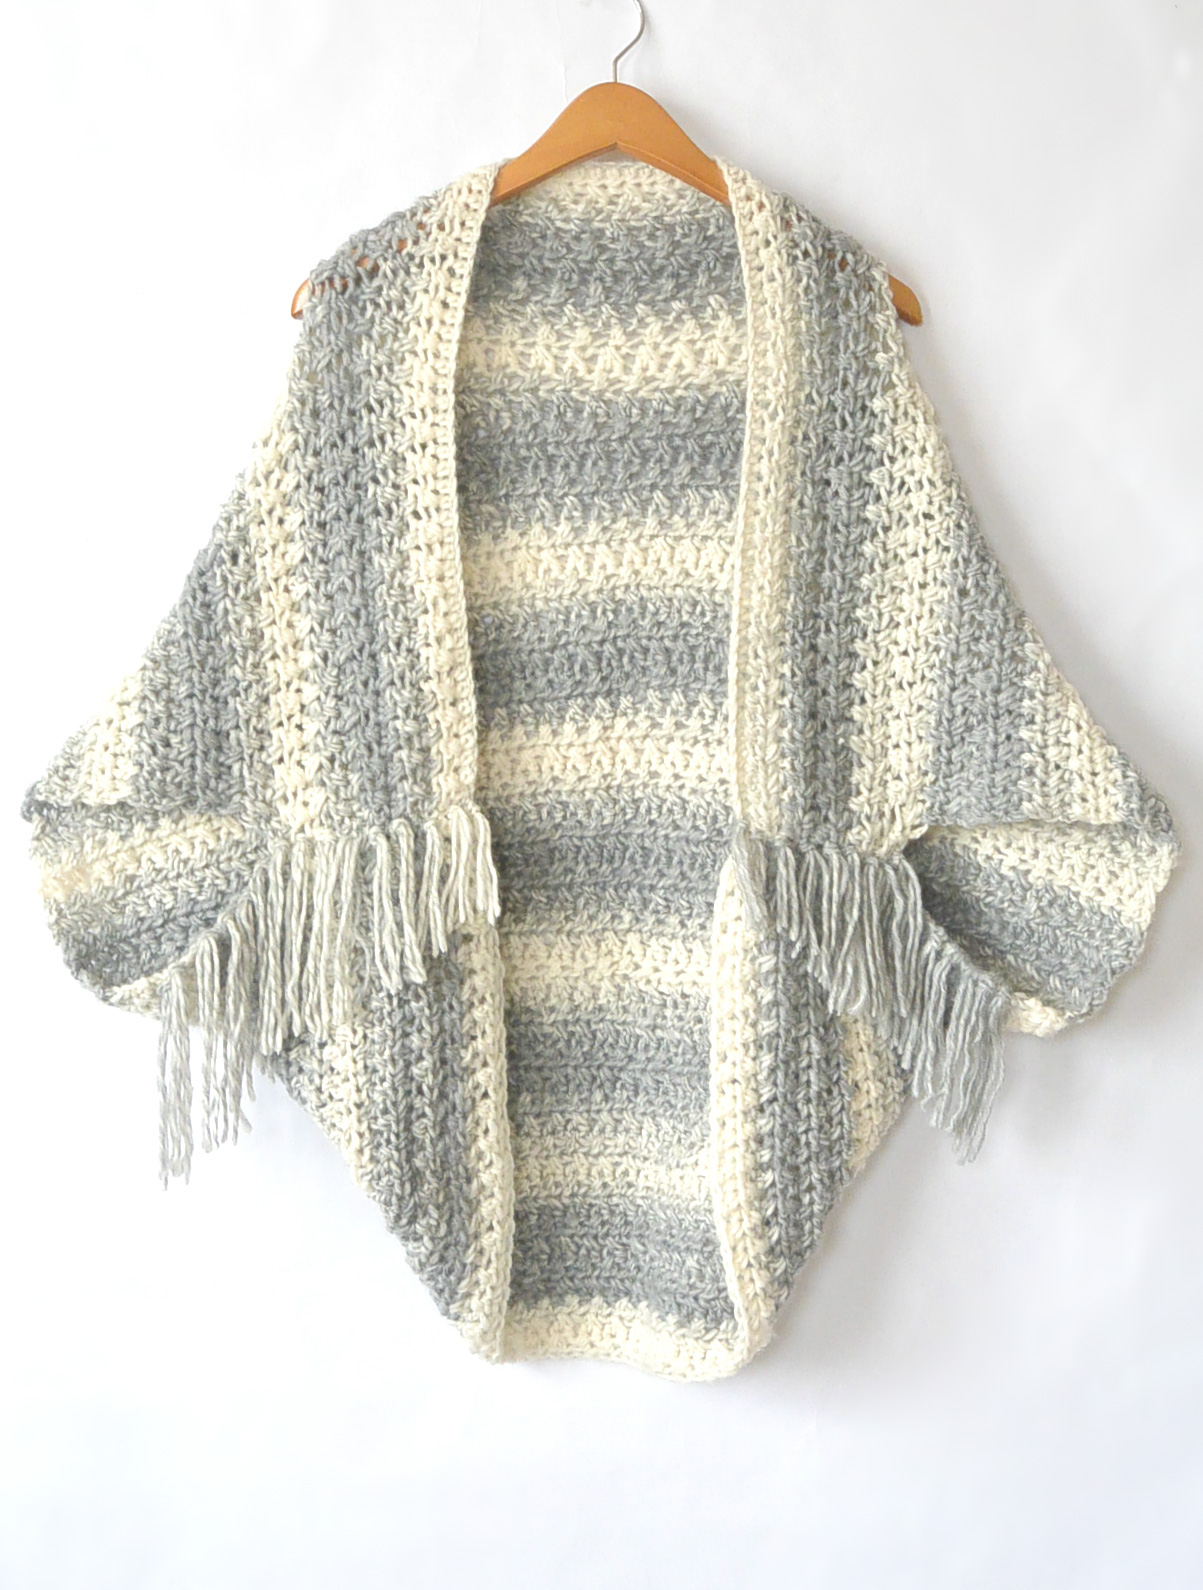 Light Frost Easy Blanket Sweater Crochet Pattern – Mama In A Stitch